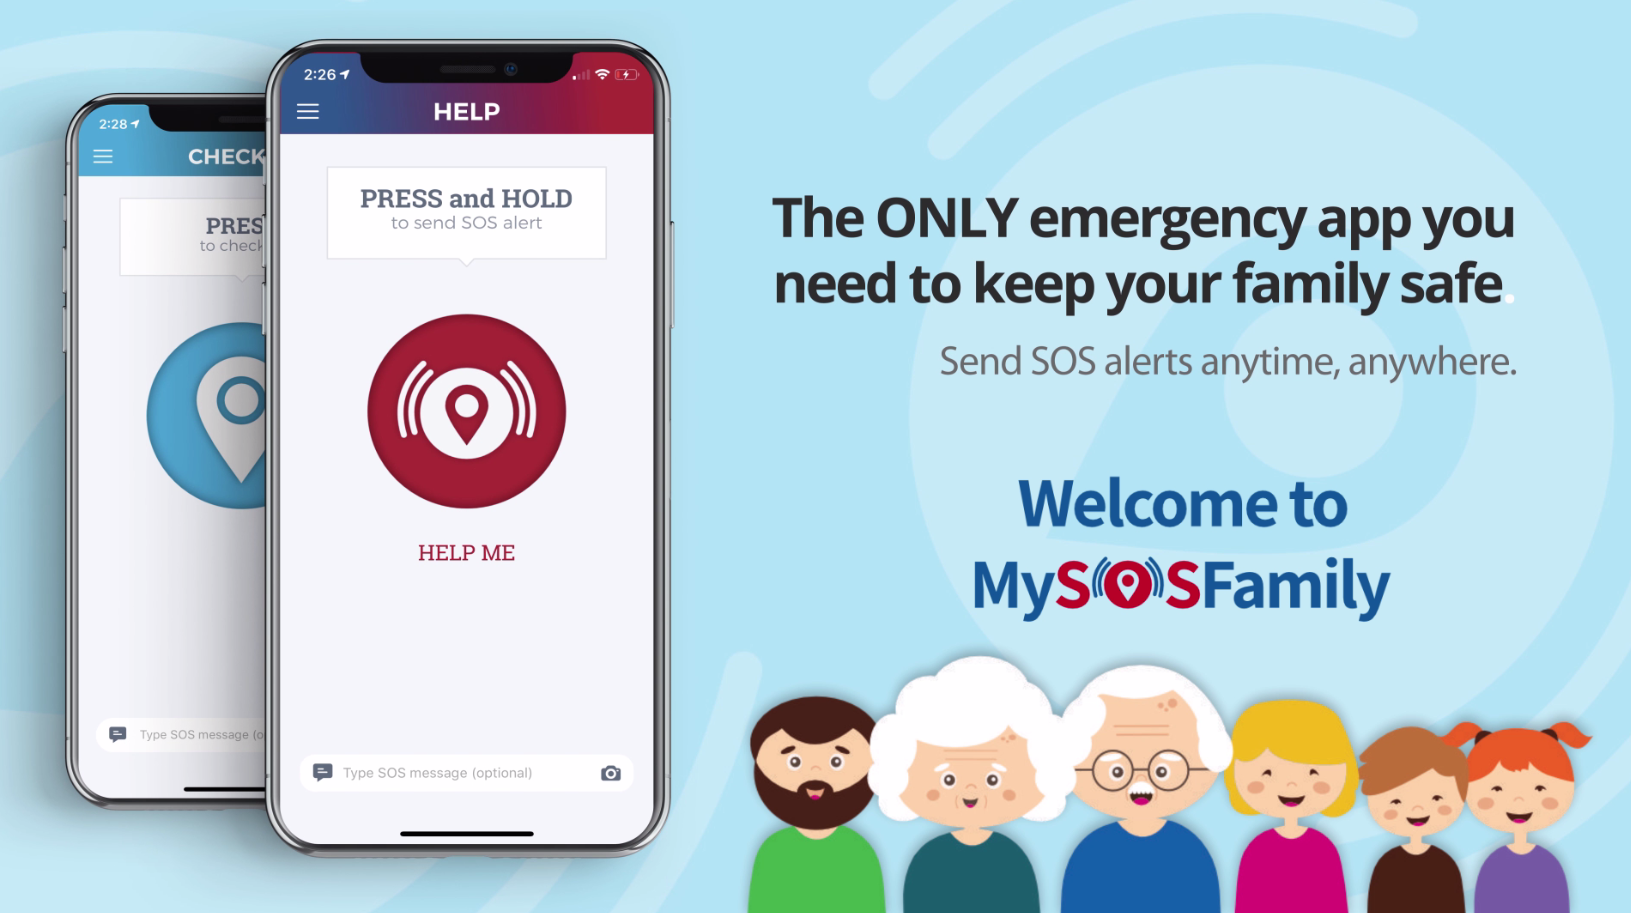 Emergency App for your elderly family when you're away